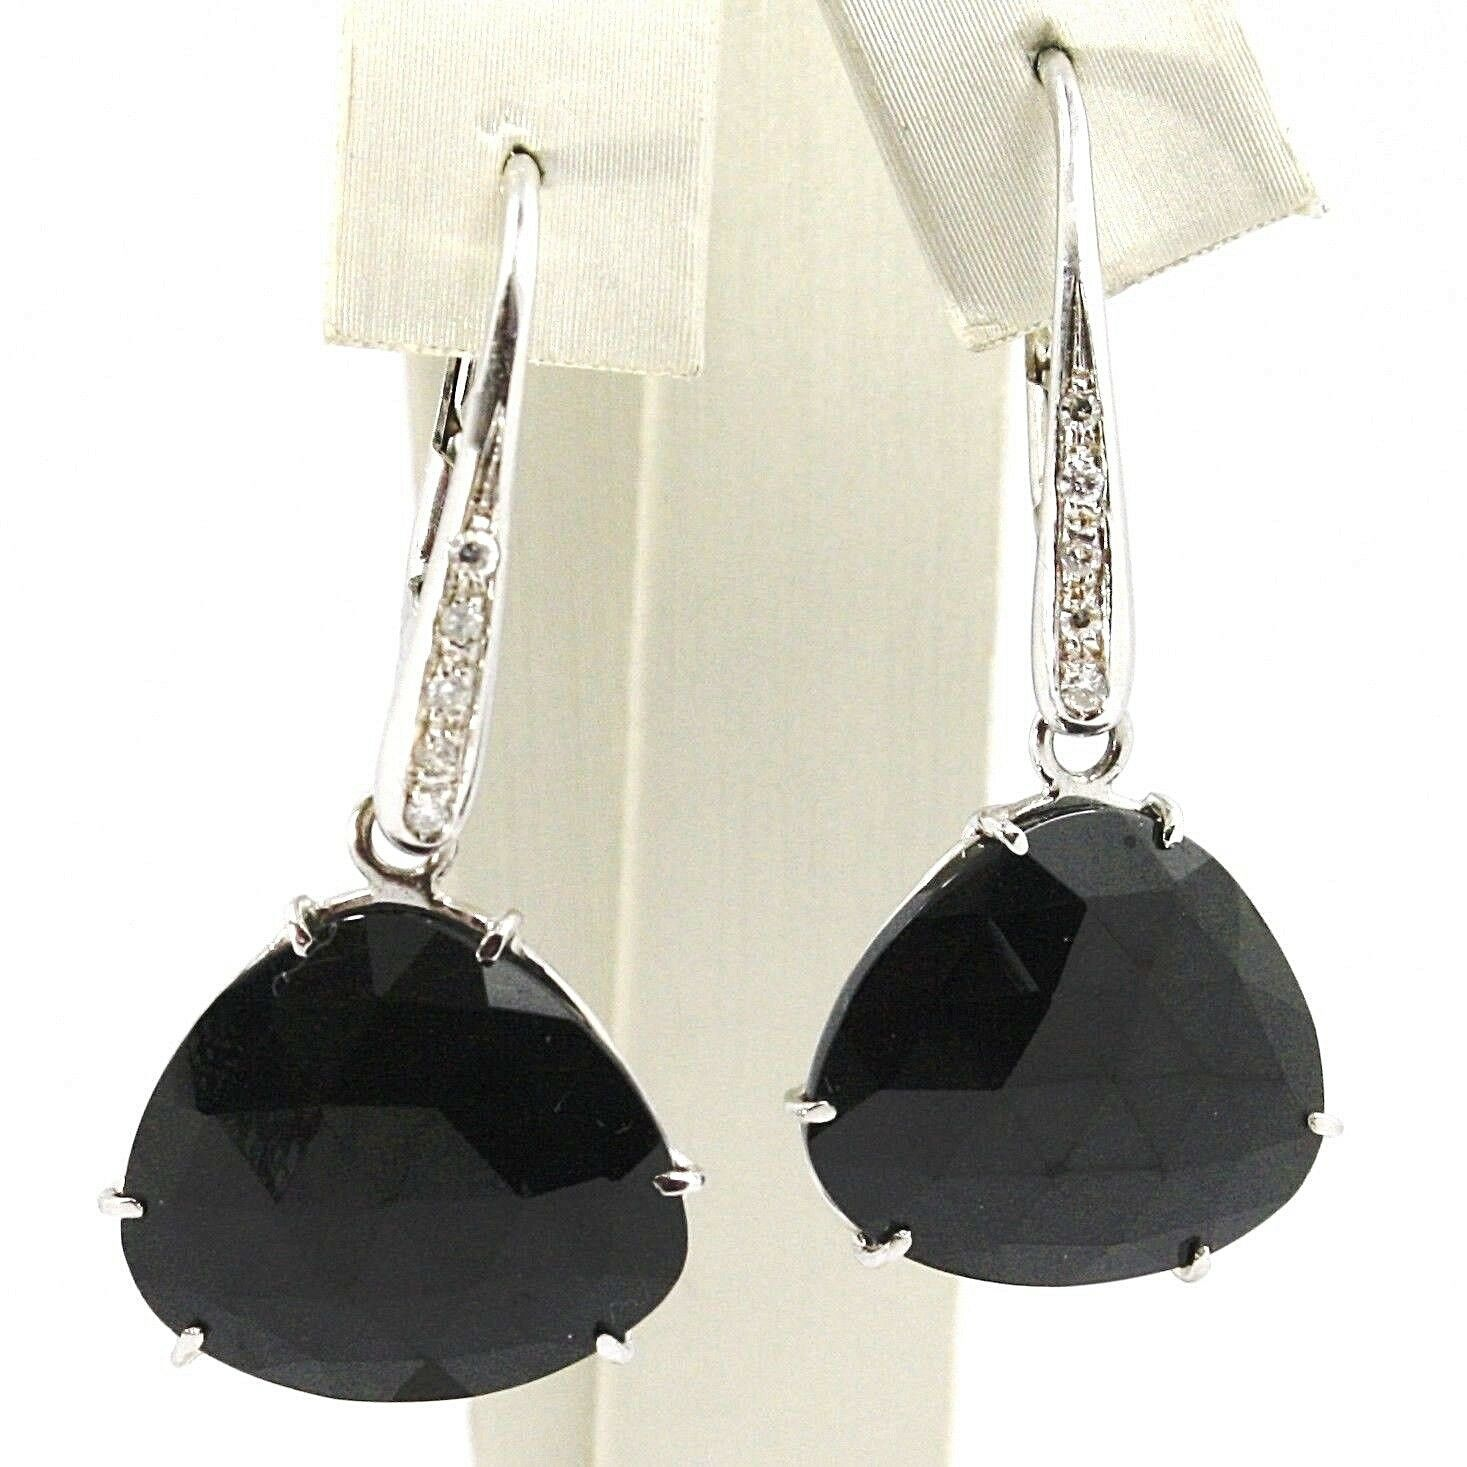 WHITE GOLD EARRINGS 750 18K, DROPS SPINEL BLACK, FACETED, DIAMONDS